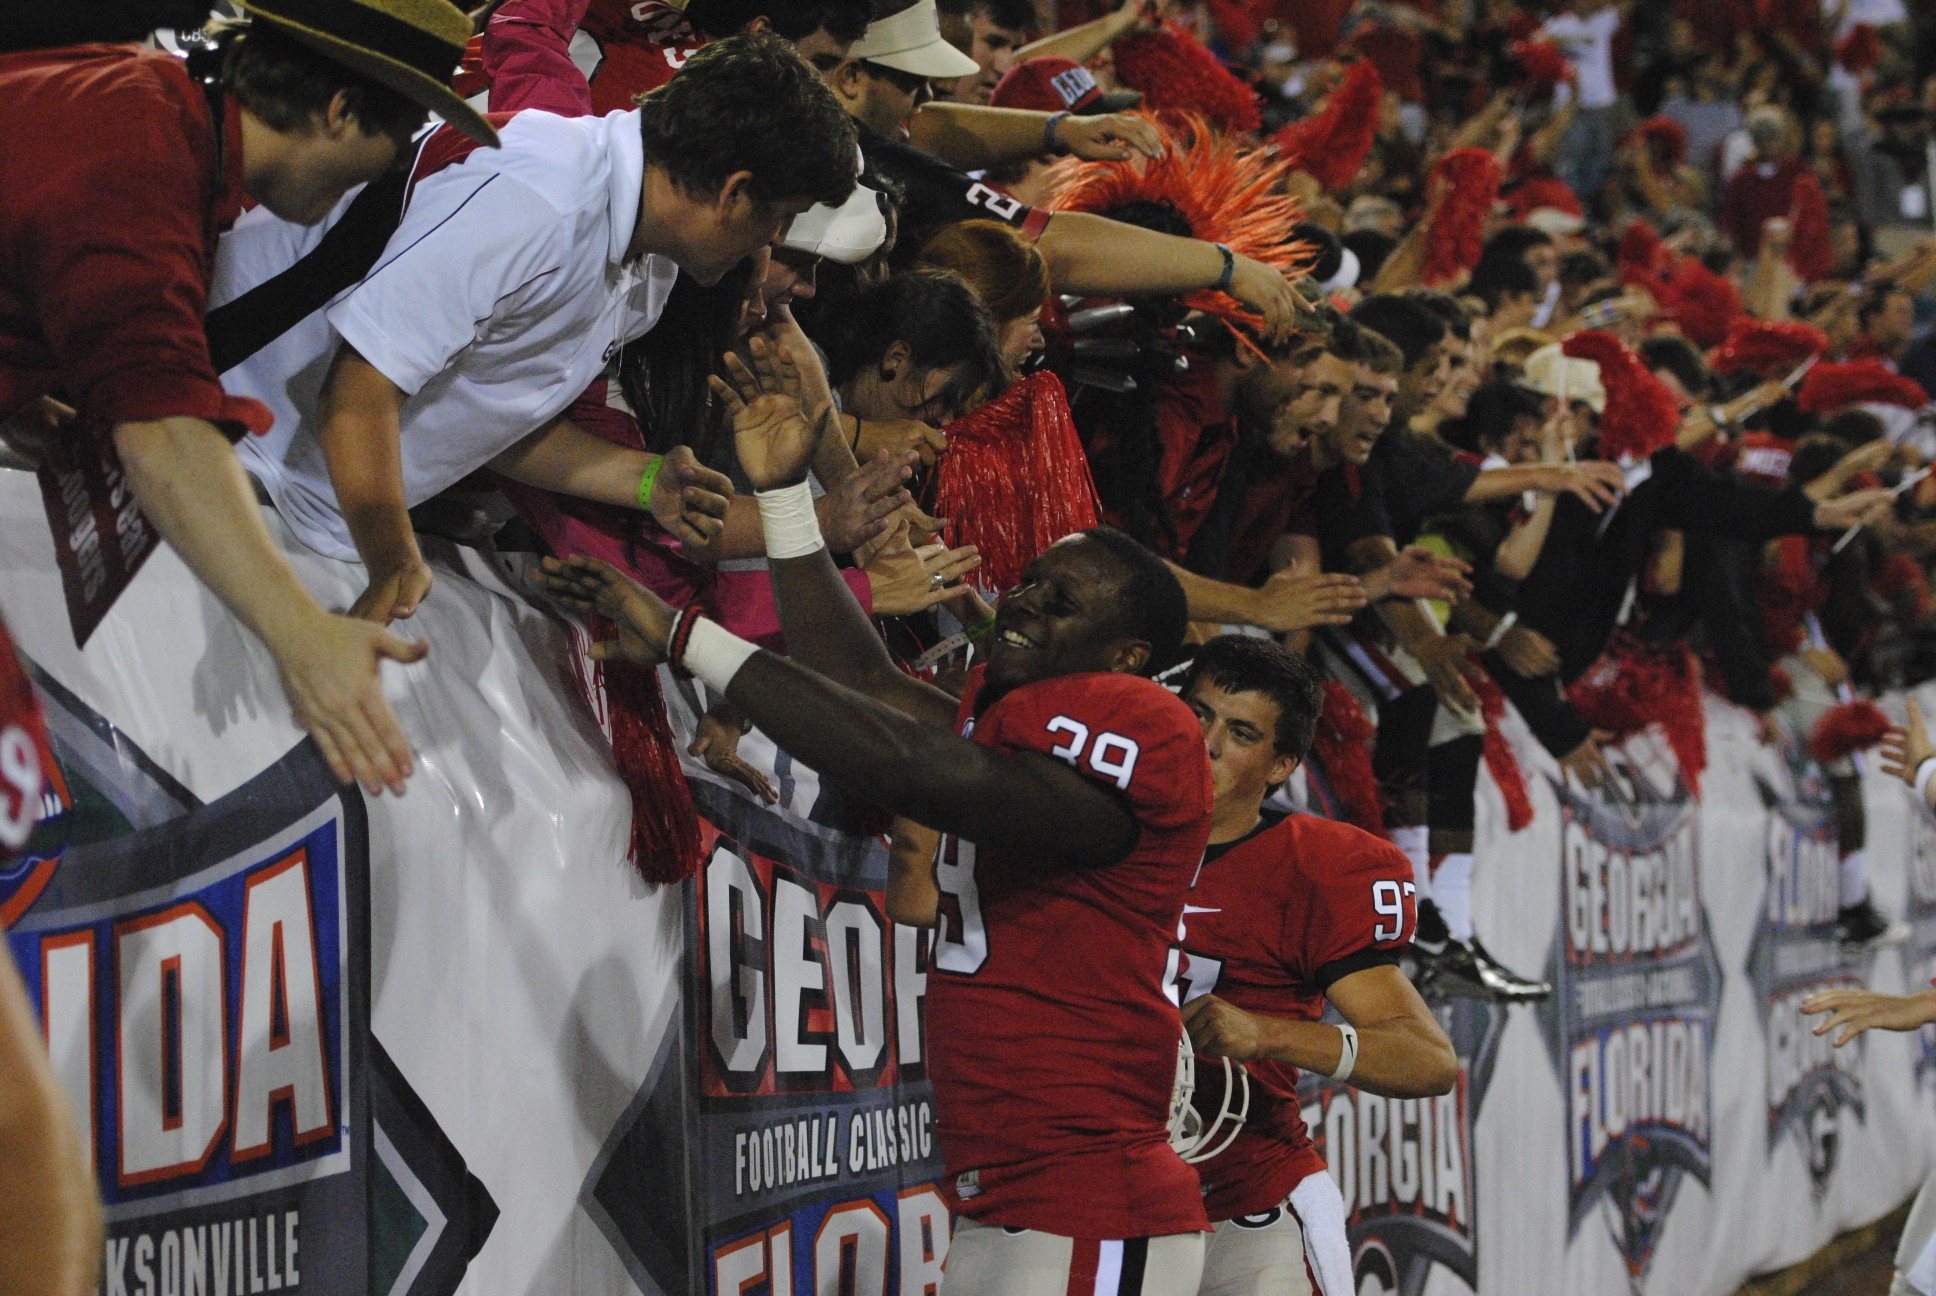 Georgia players high five their fans after the win over Florida 17-9, Saturday.